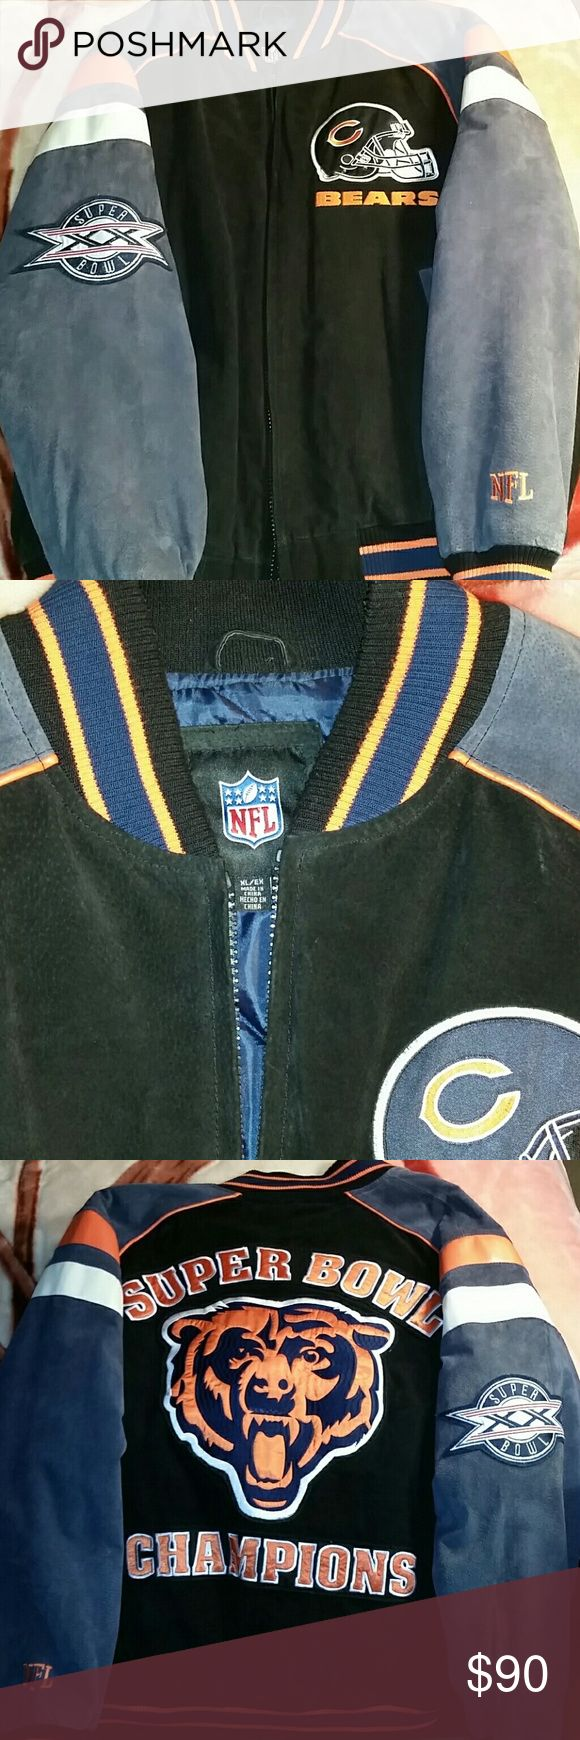 NFL Chicago Bears super bowl  jacket XL/EX Suede w/ leather accents worn twice absolutely flawless!!! NFL  Jackets & Coats Bomber & Varsity